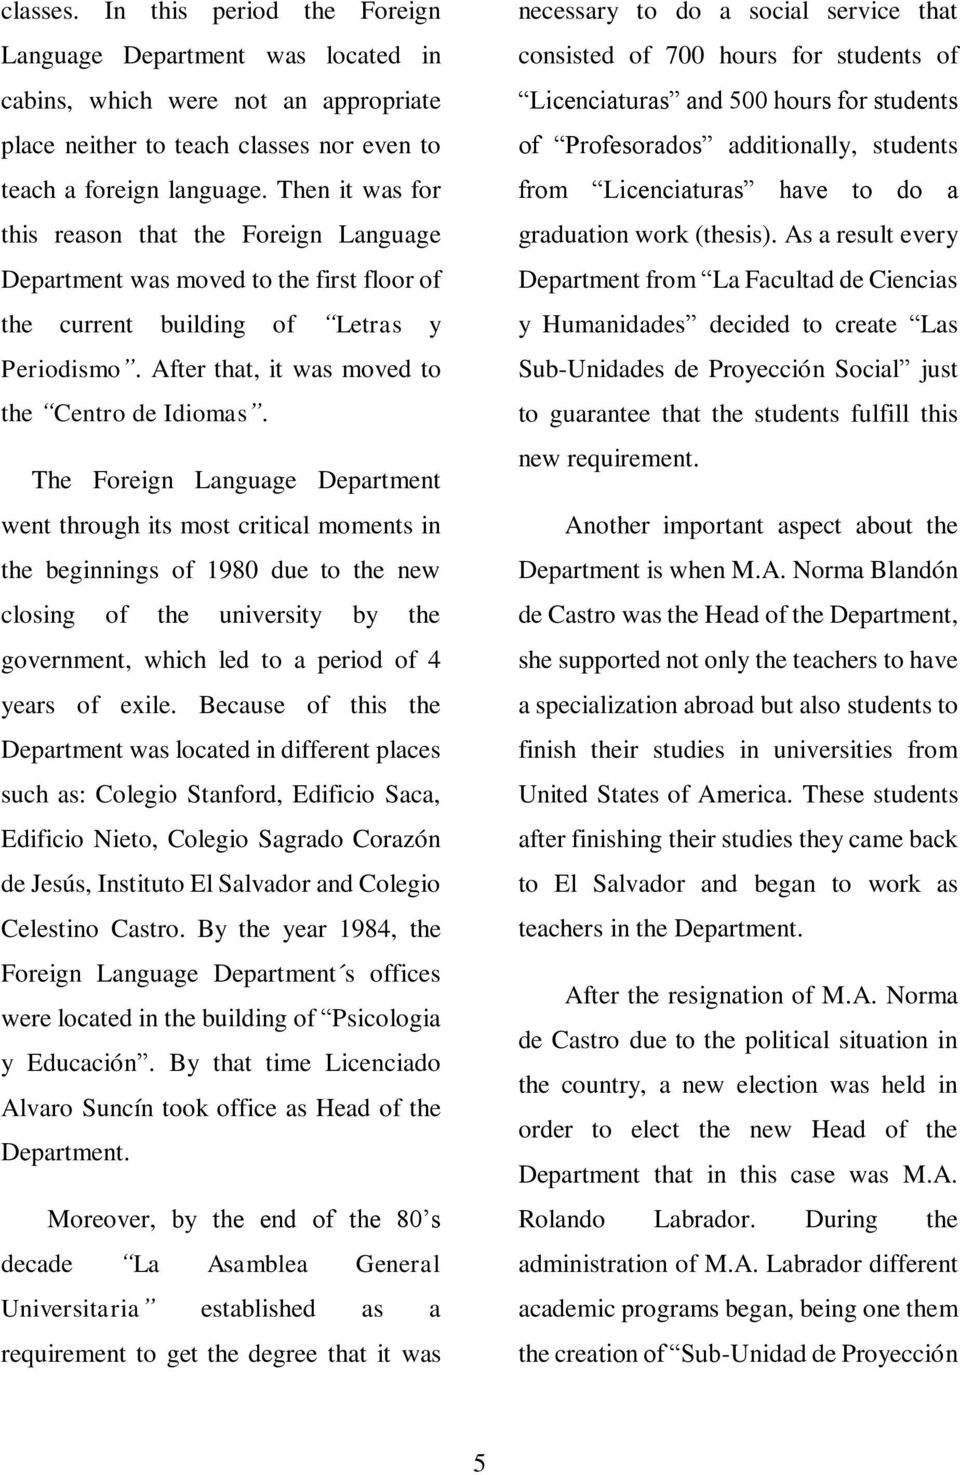 The Foreign Language Department went through its most critical moments in the beginnings of 1980 due to the new closing of the university by the government, which led to a period of 4 years of exile.